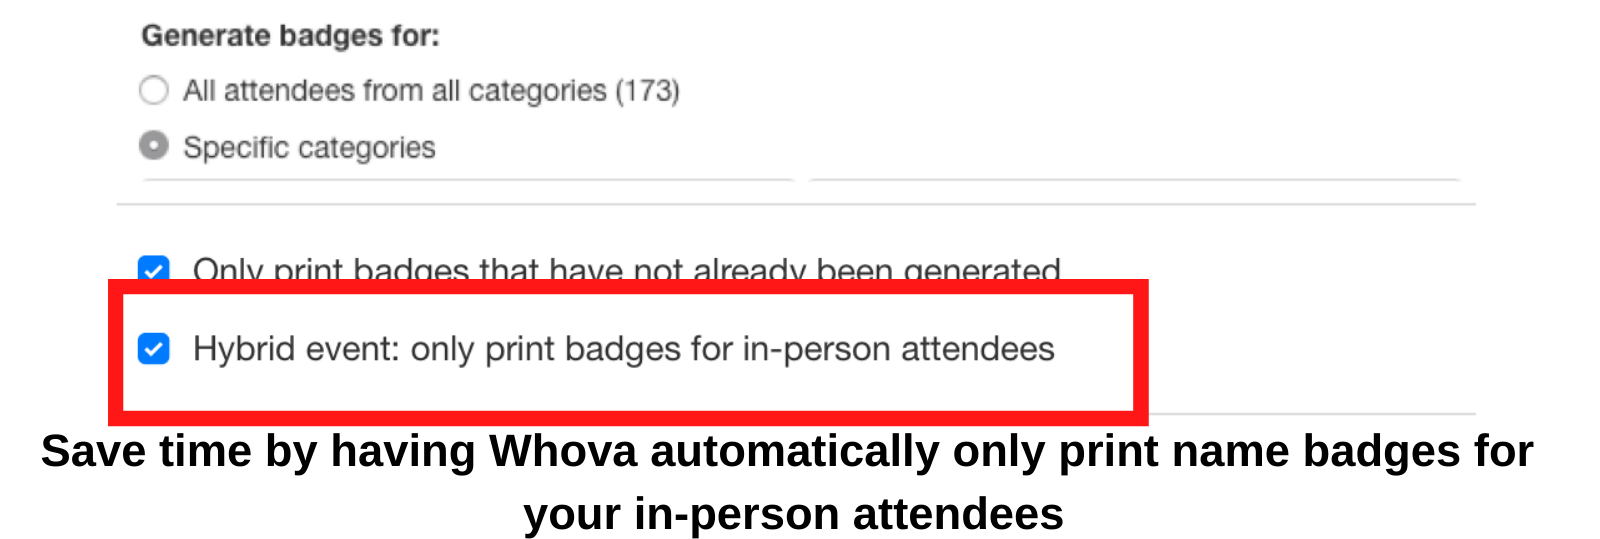 Save time by having Whova automaticaprint name badges for your in-person attendees.lly only